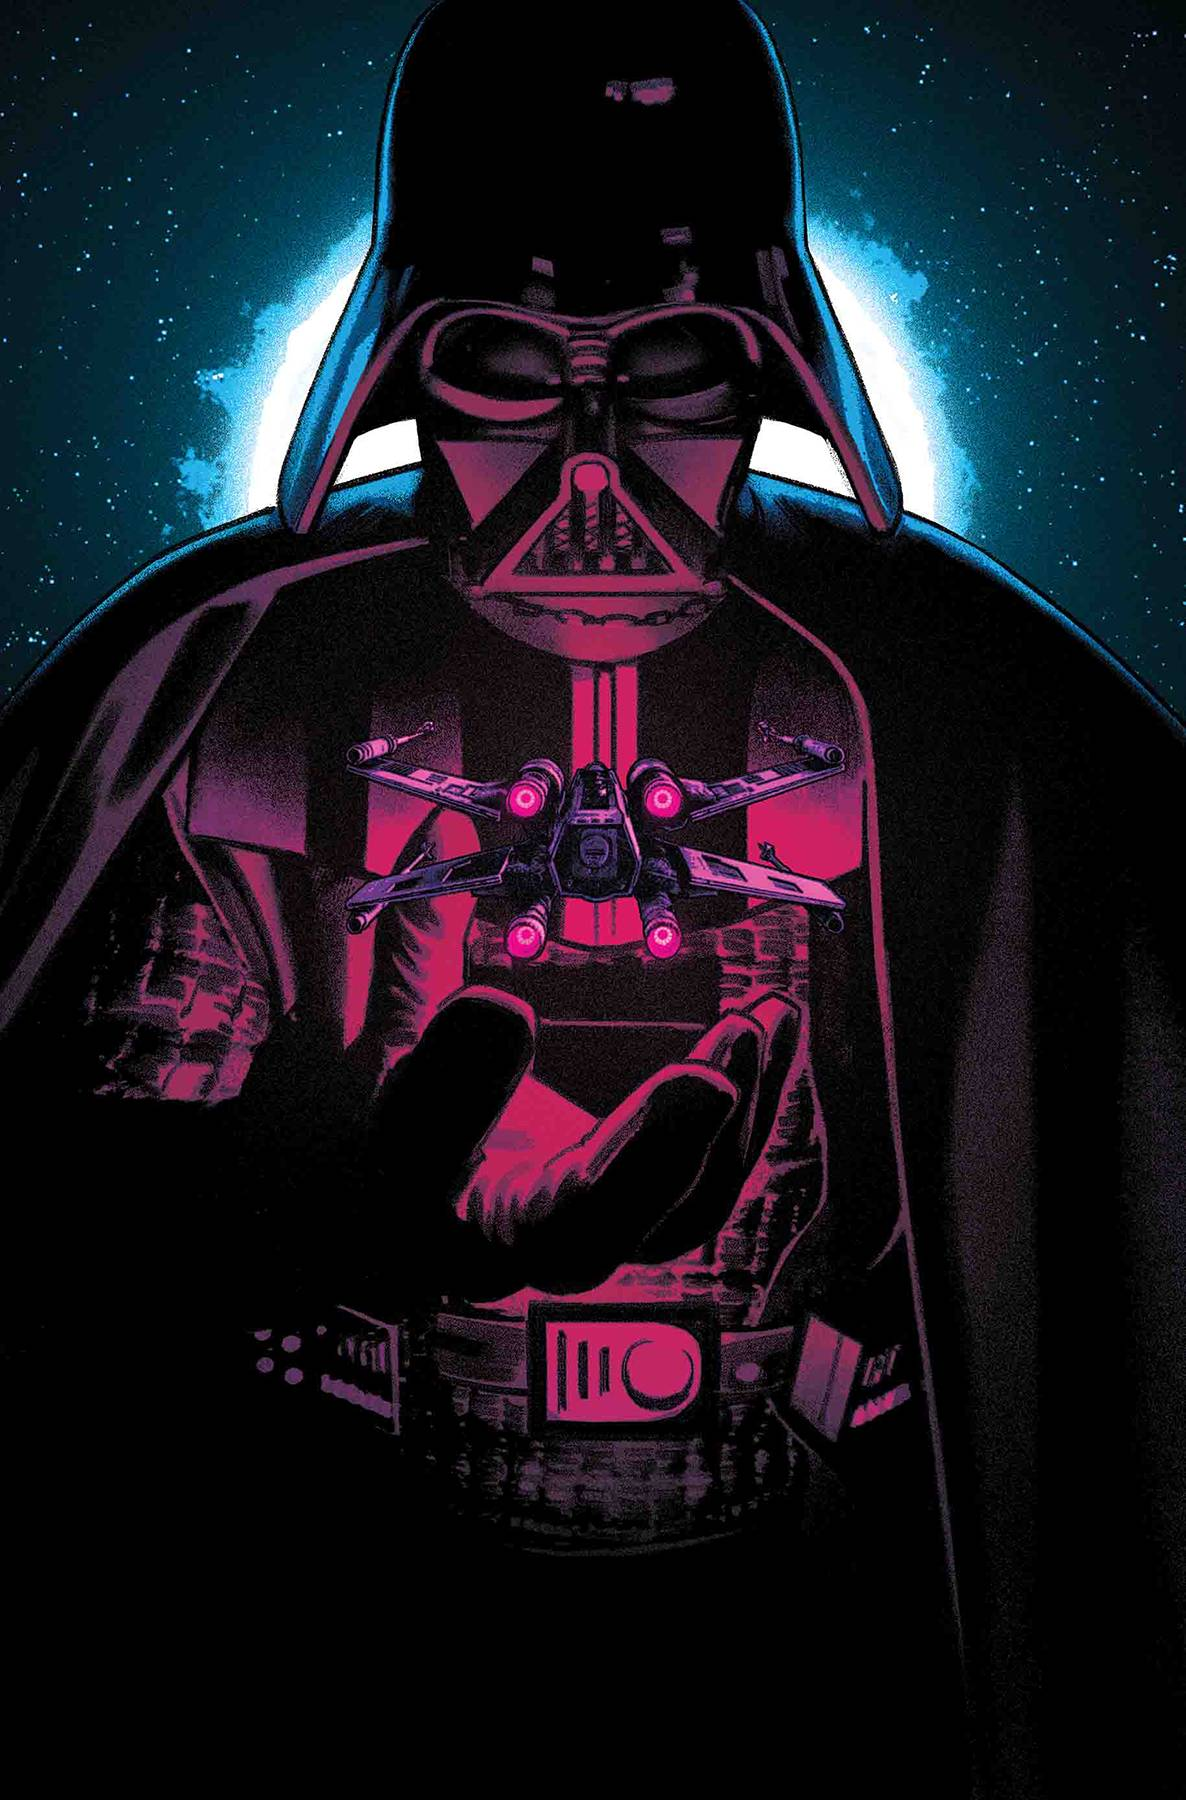 STAR WARS VADER DARK VISIONS 4 of 5.jpg